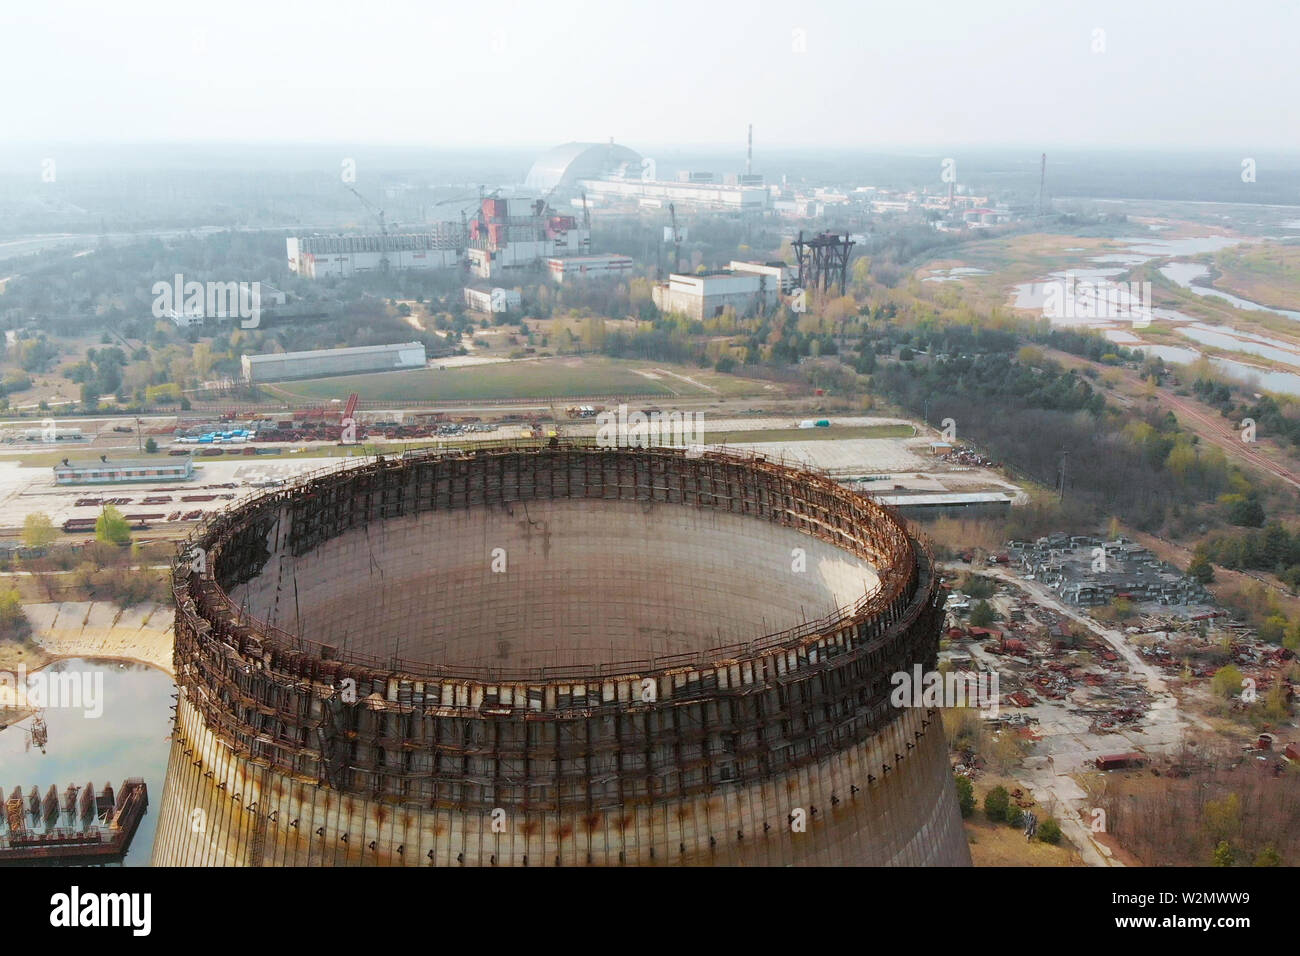 Flying over the cooling tower near Chernobyl NPP. - Stock Image